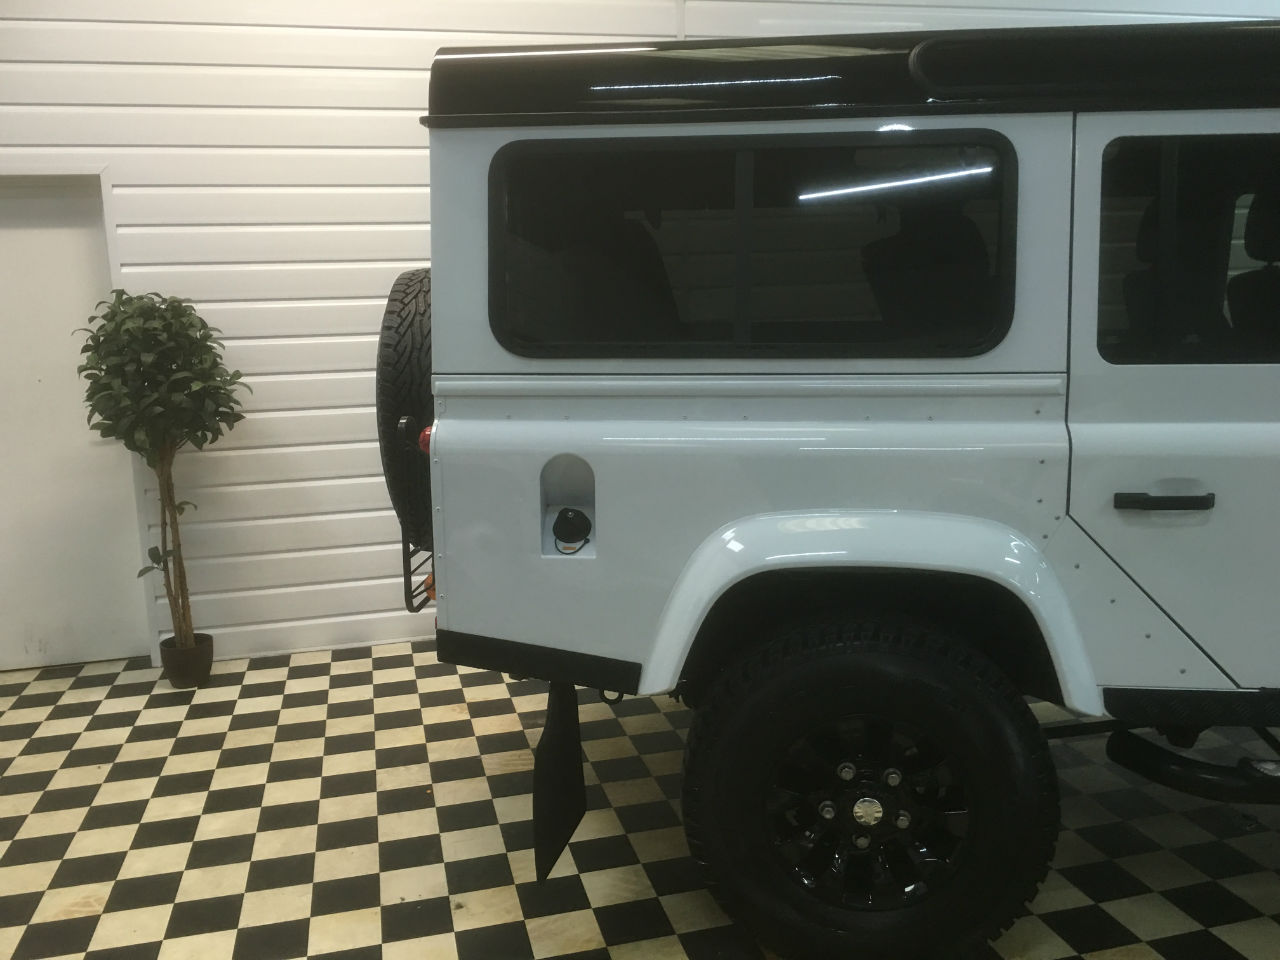 Land Rover Defender XS Station Wagon 2.2 TDCi 7 Seater Four Wheel Drive Diesel Fuji White